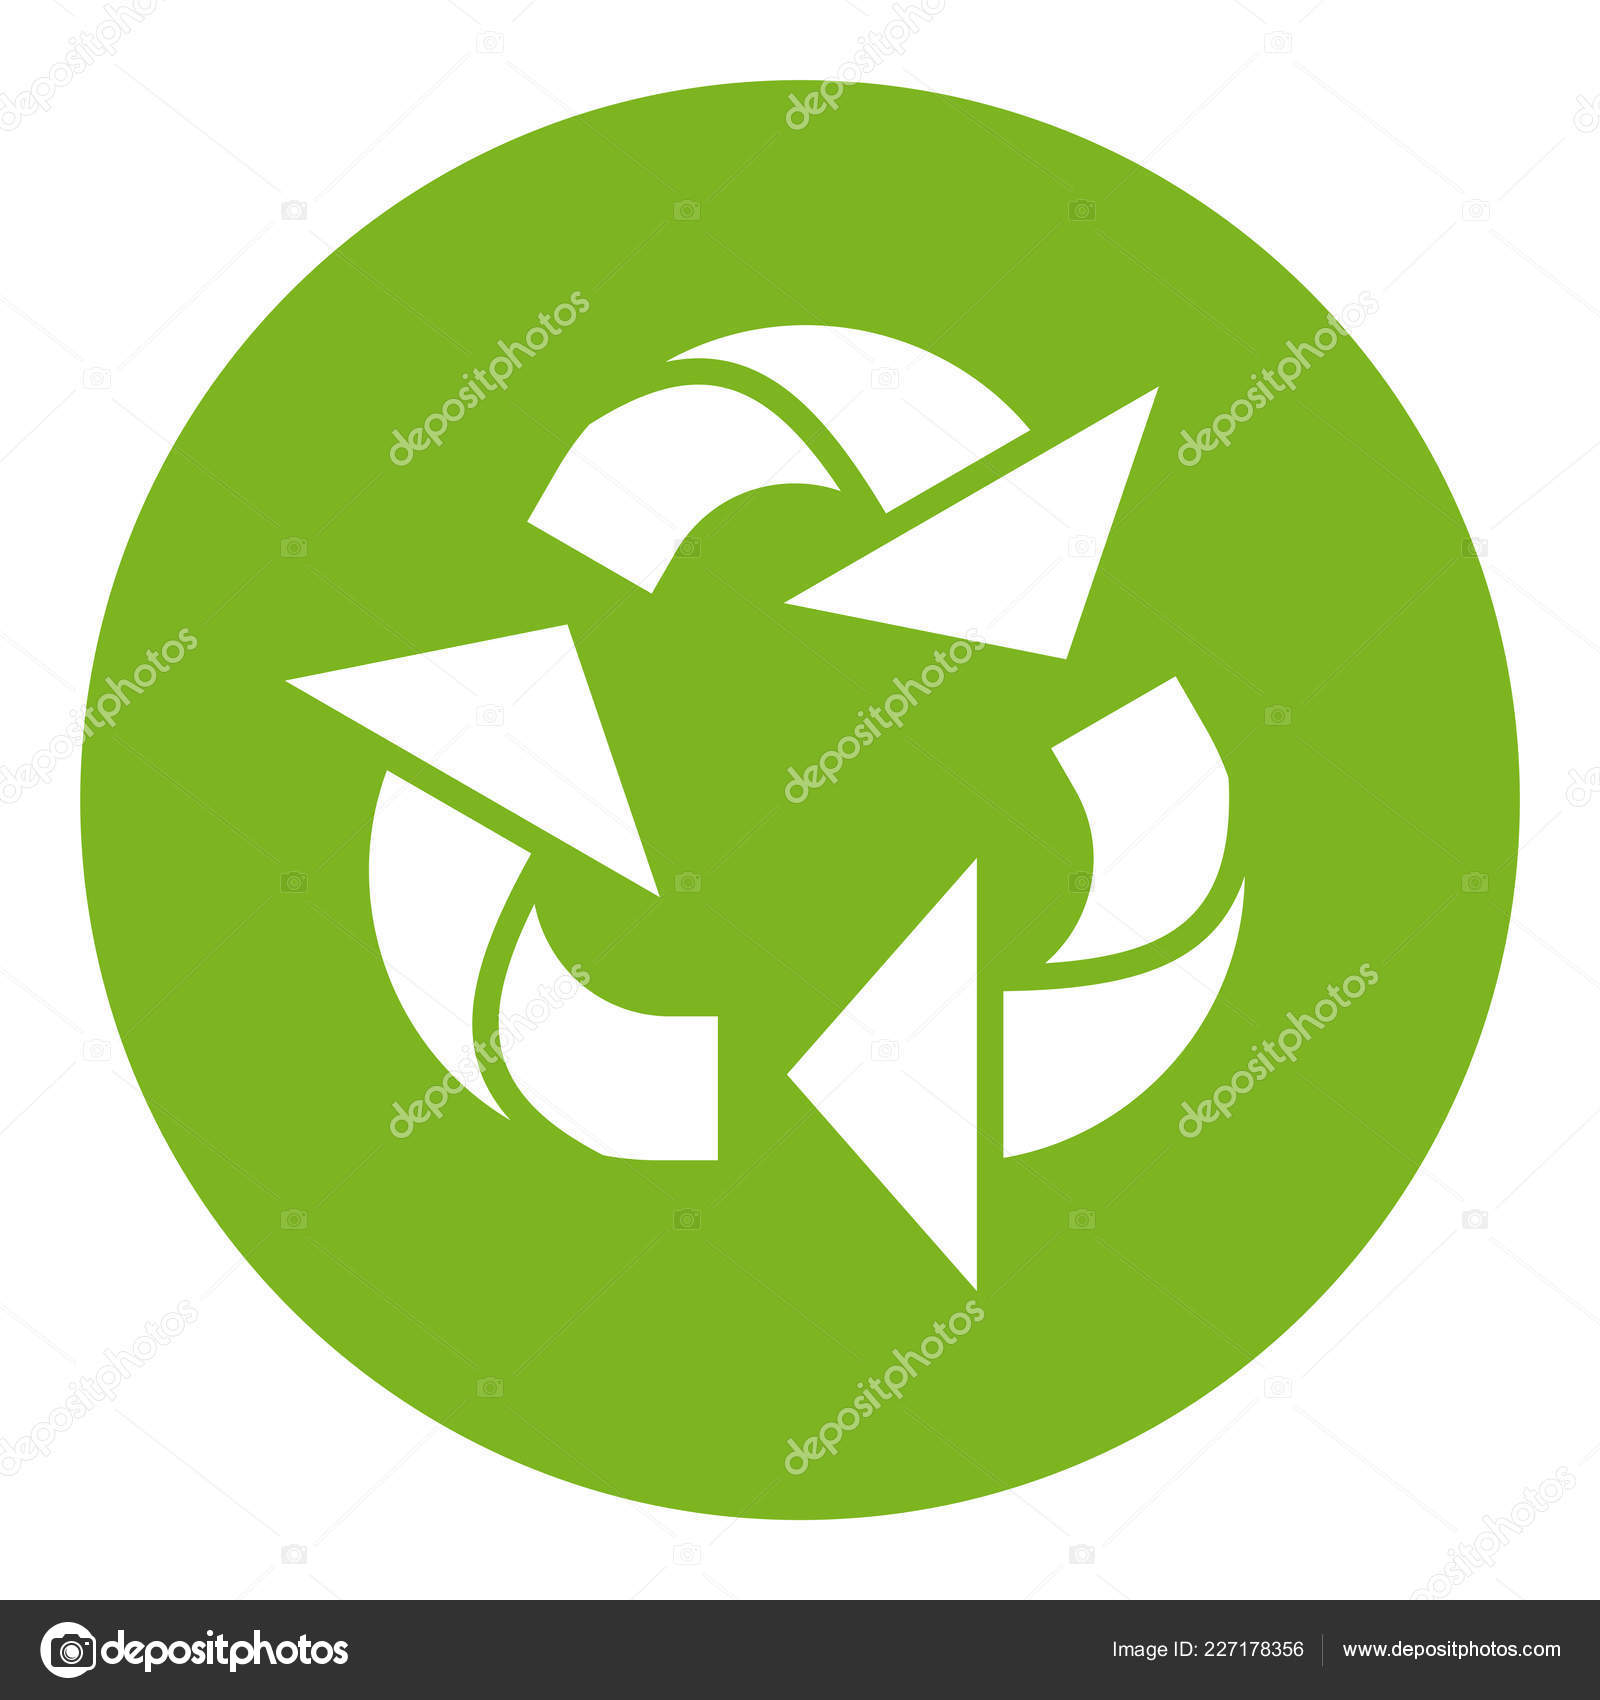 picture regarding Recycle Sign Printable titled Printable recycling emblem Cartoon recycle indicator Inventory